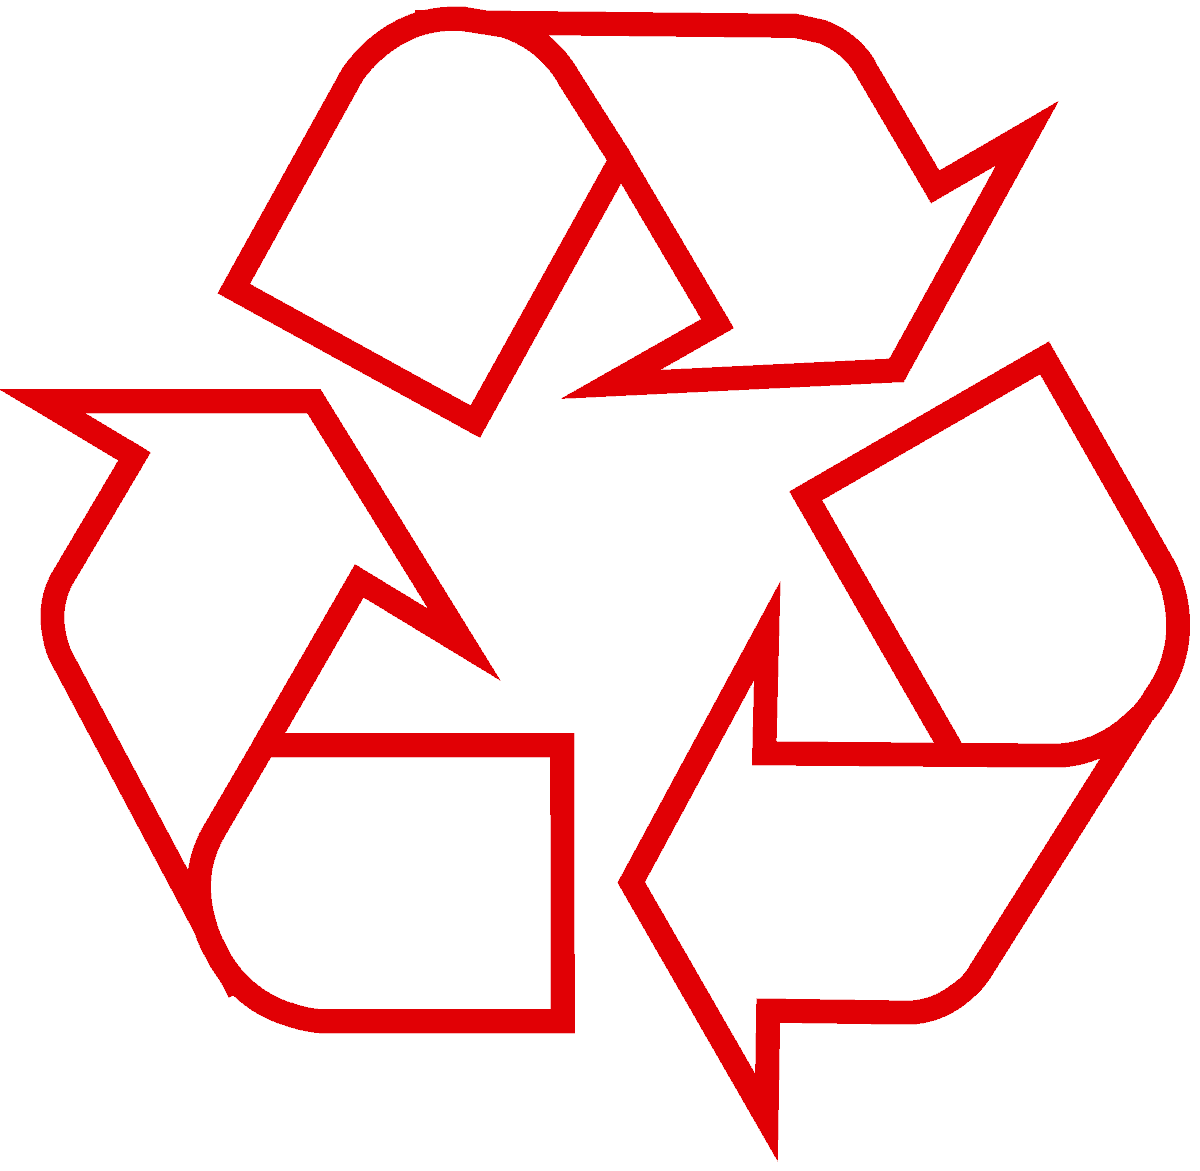 recycling-symbol-icon-outline-red